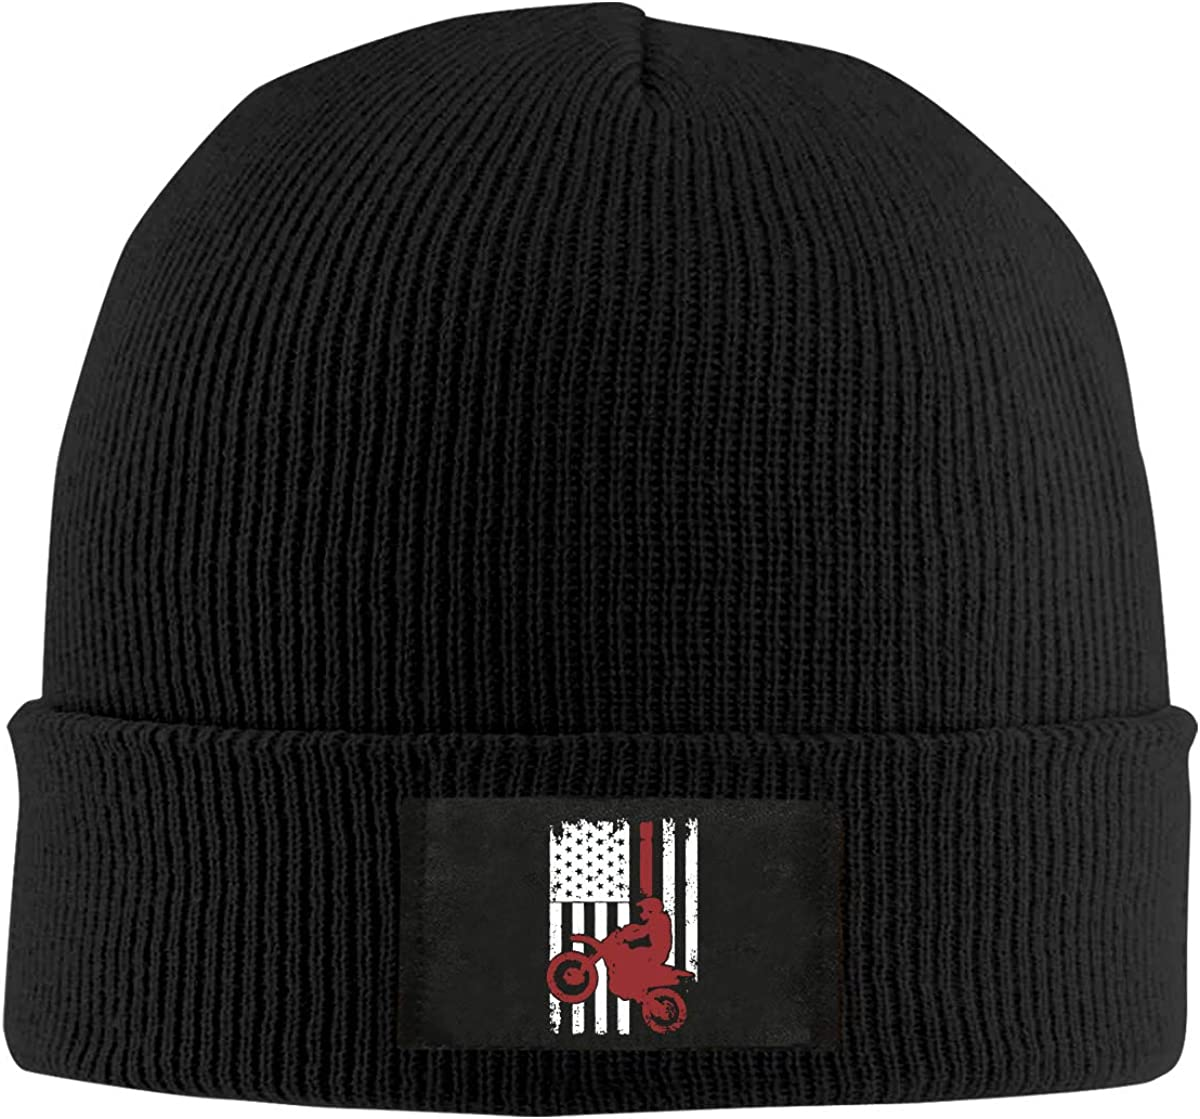 100/% Acrylic Daily Beanies Cap BF5Y6z/&MA Mens and Womens USA Flag Dirtbike Motocross Knit Cap